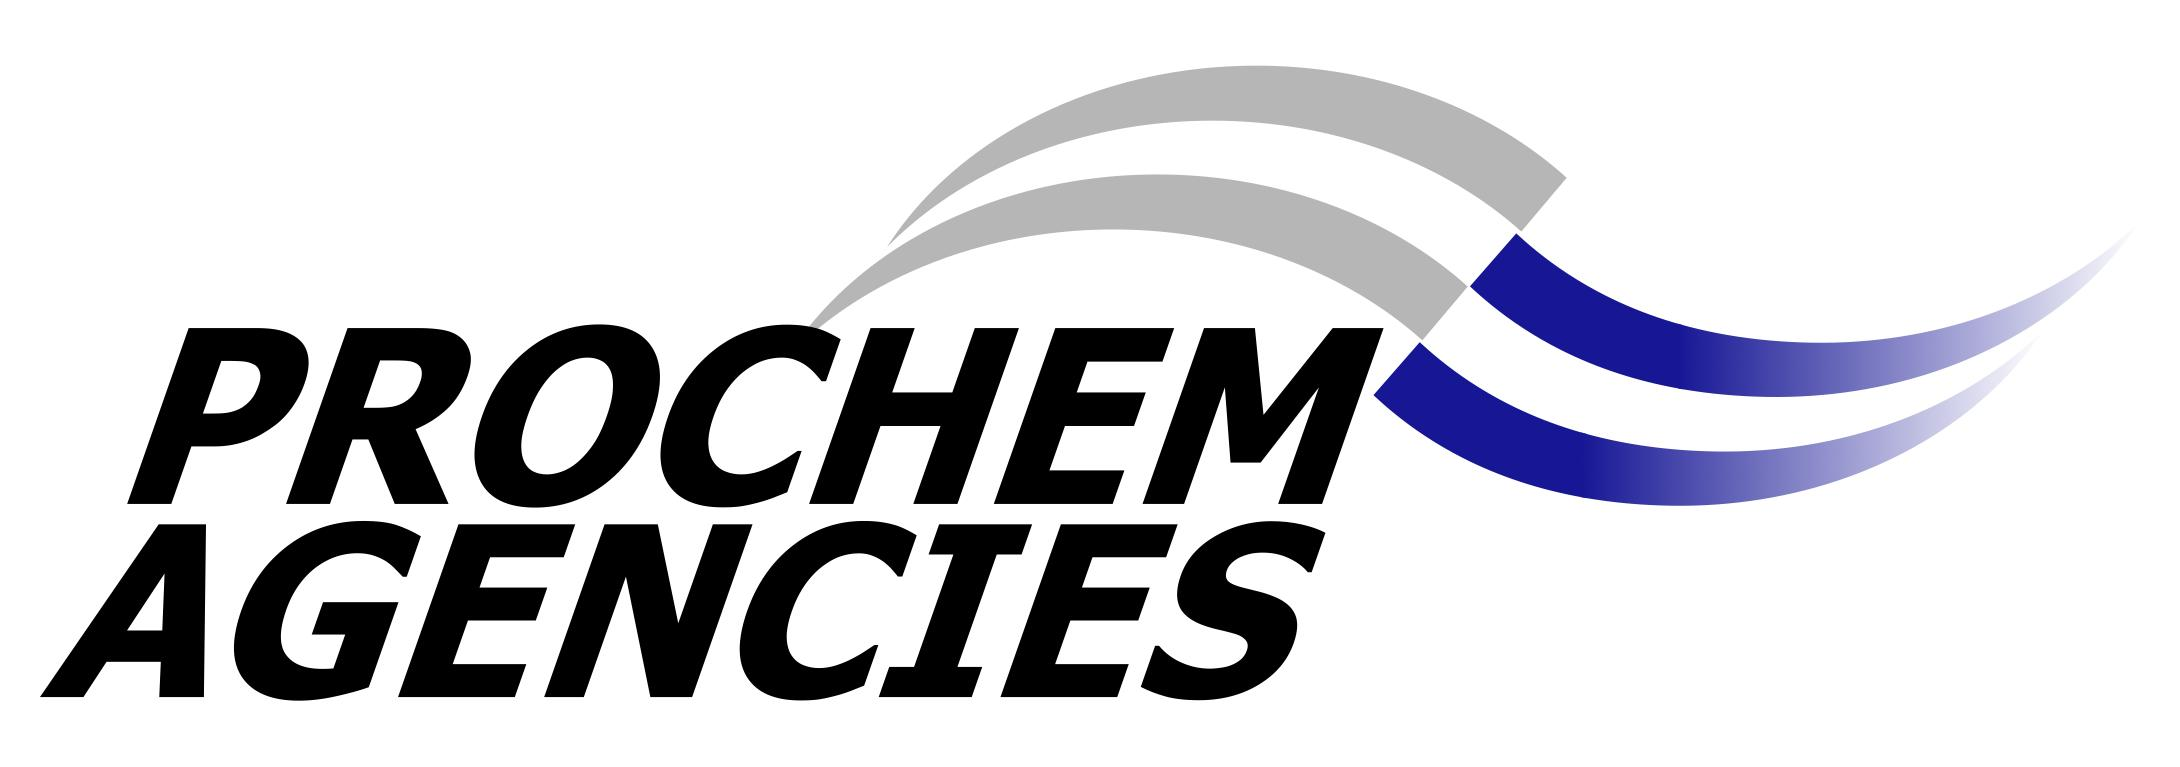 Prochem Agencies Logo